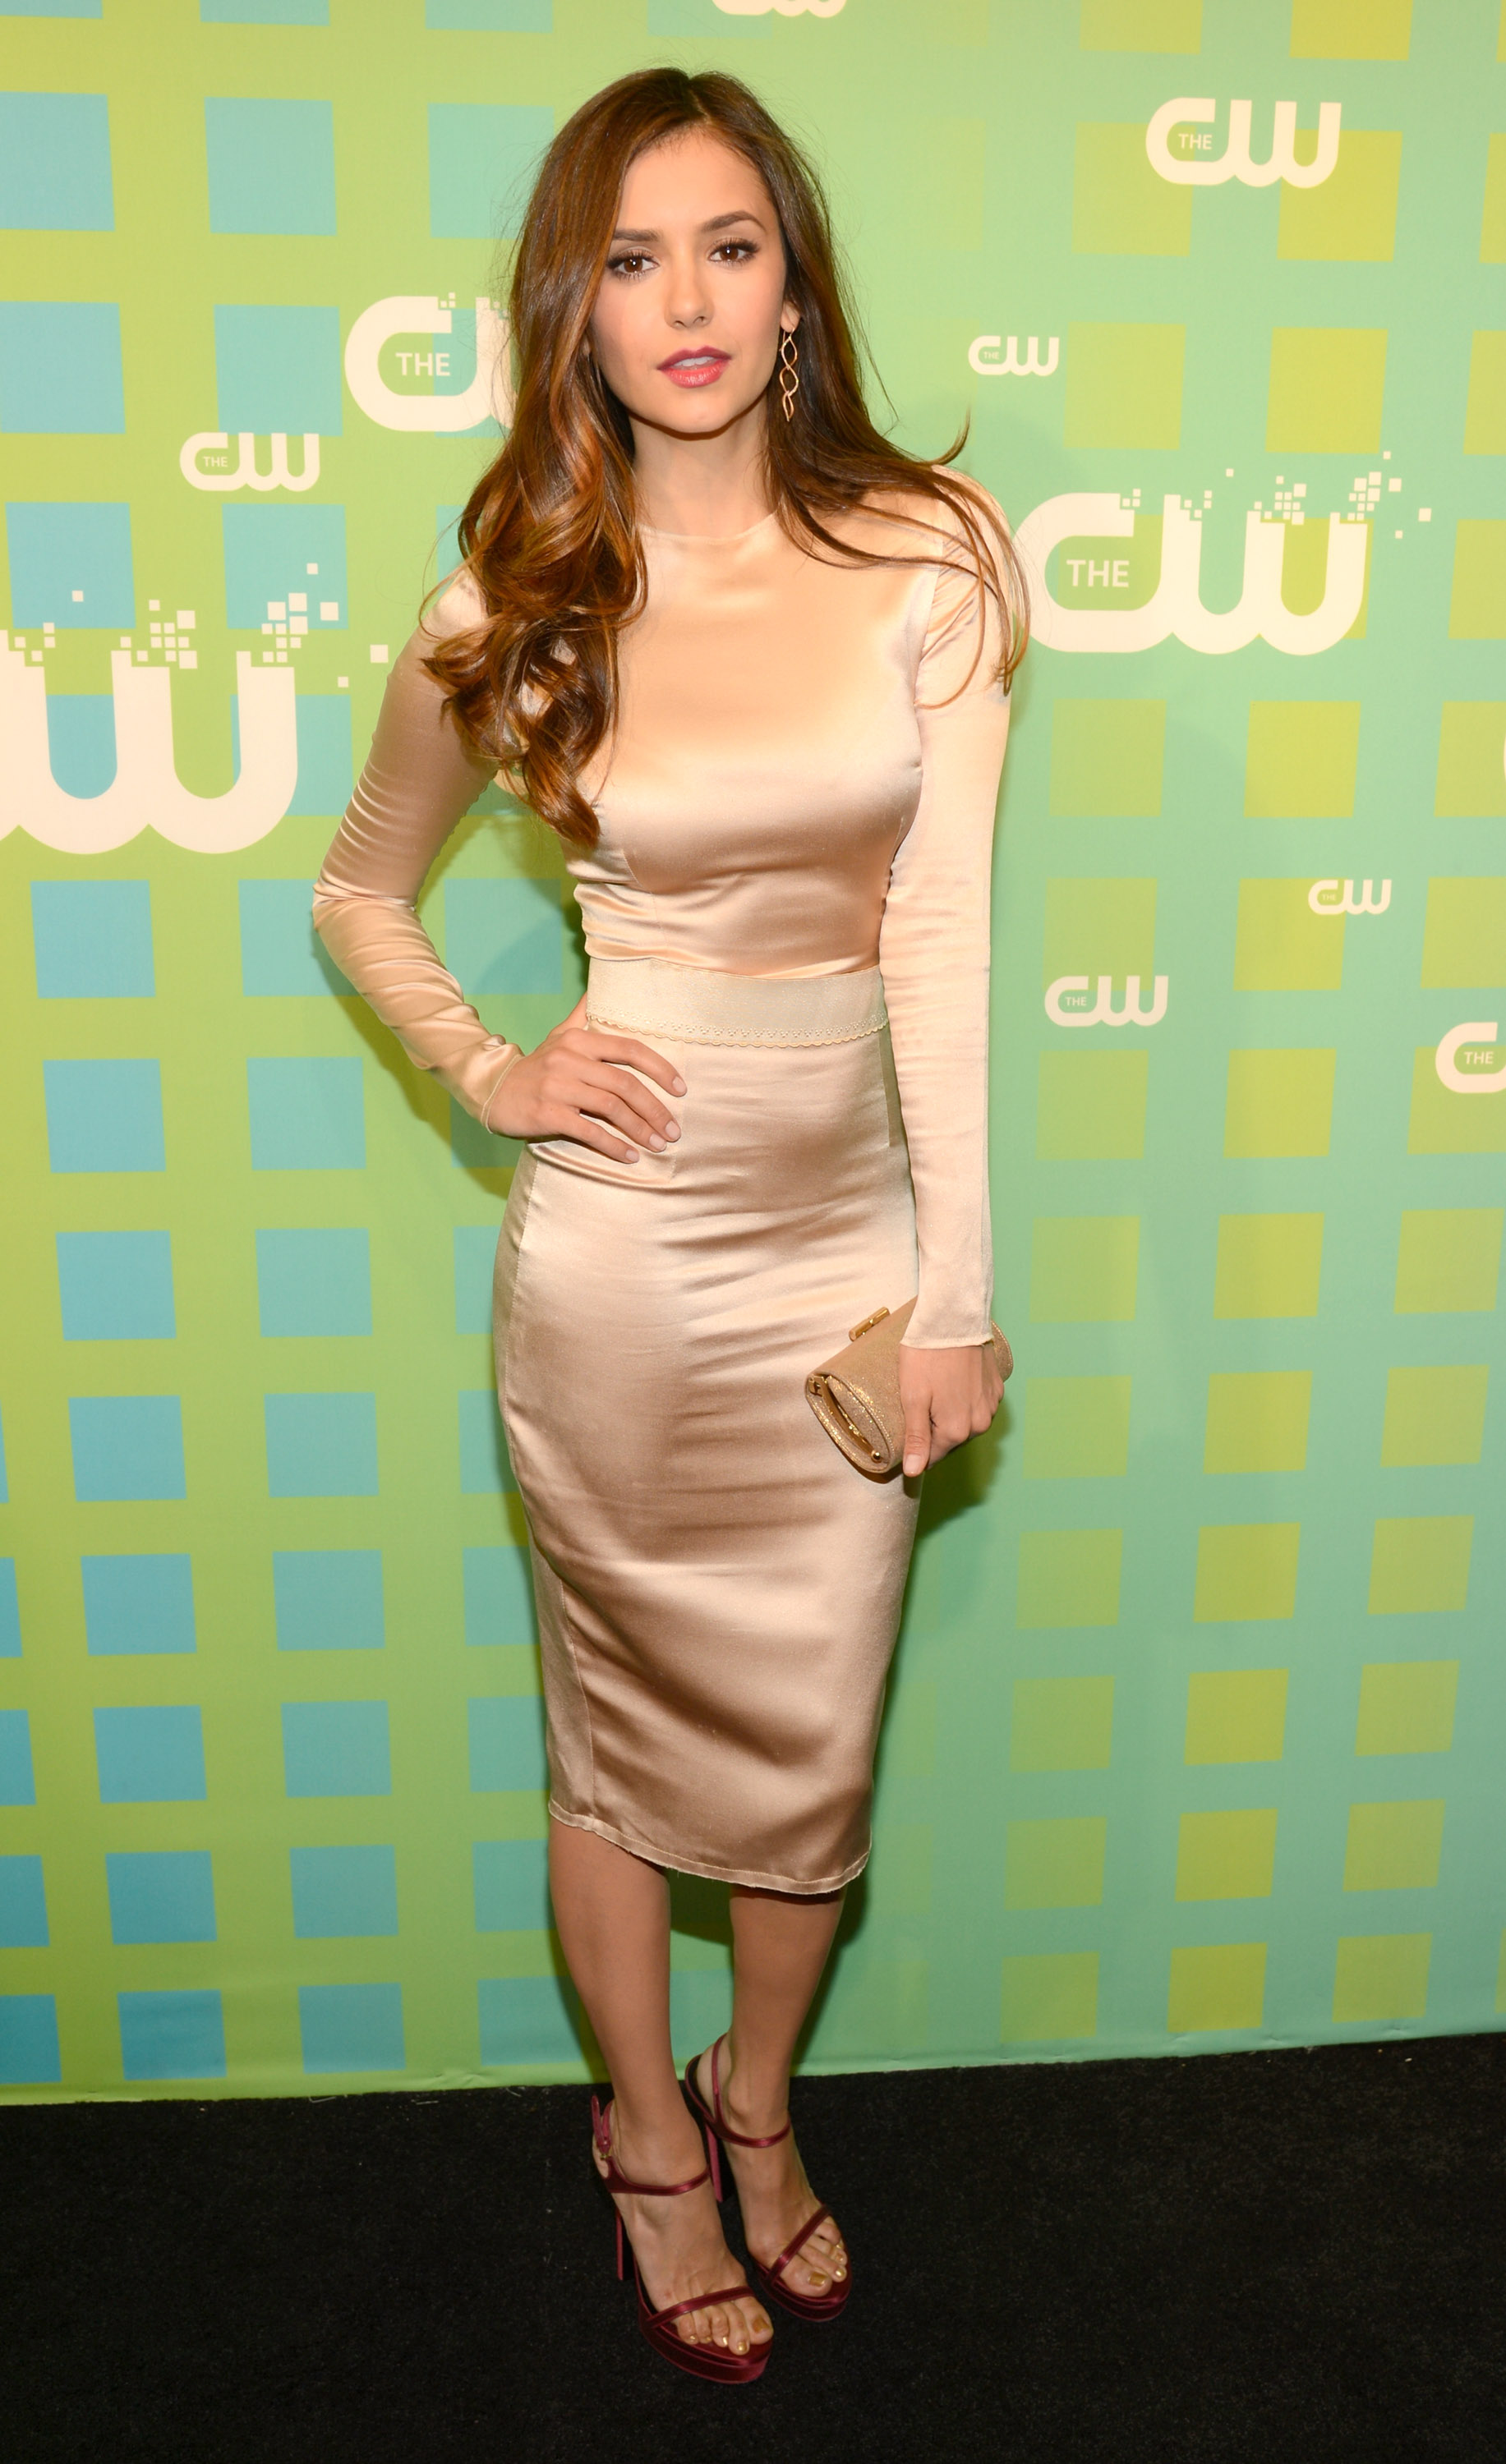 At The CW's 2012 upfronts, Nina glimmered in a long-sleeved Dolce & Gabbana frock and red sandals.